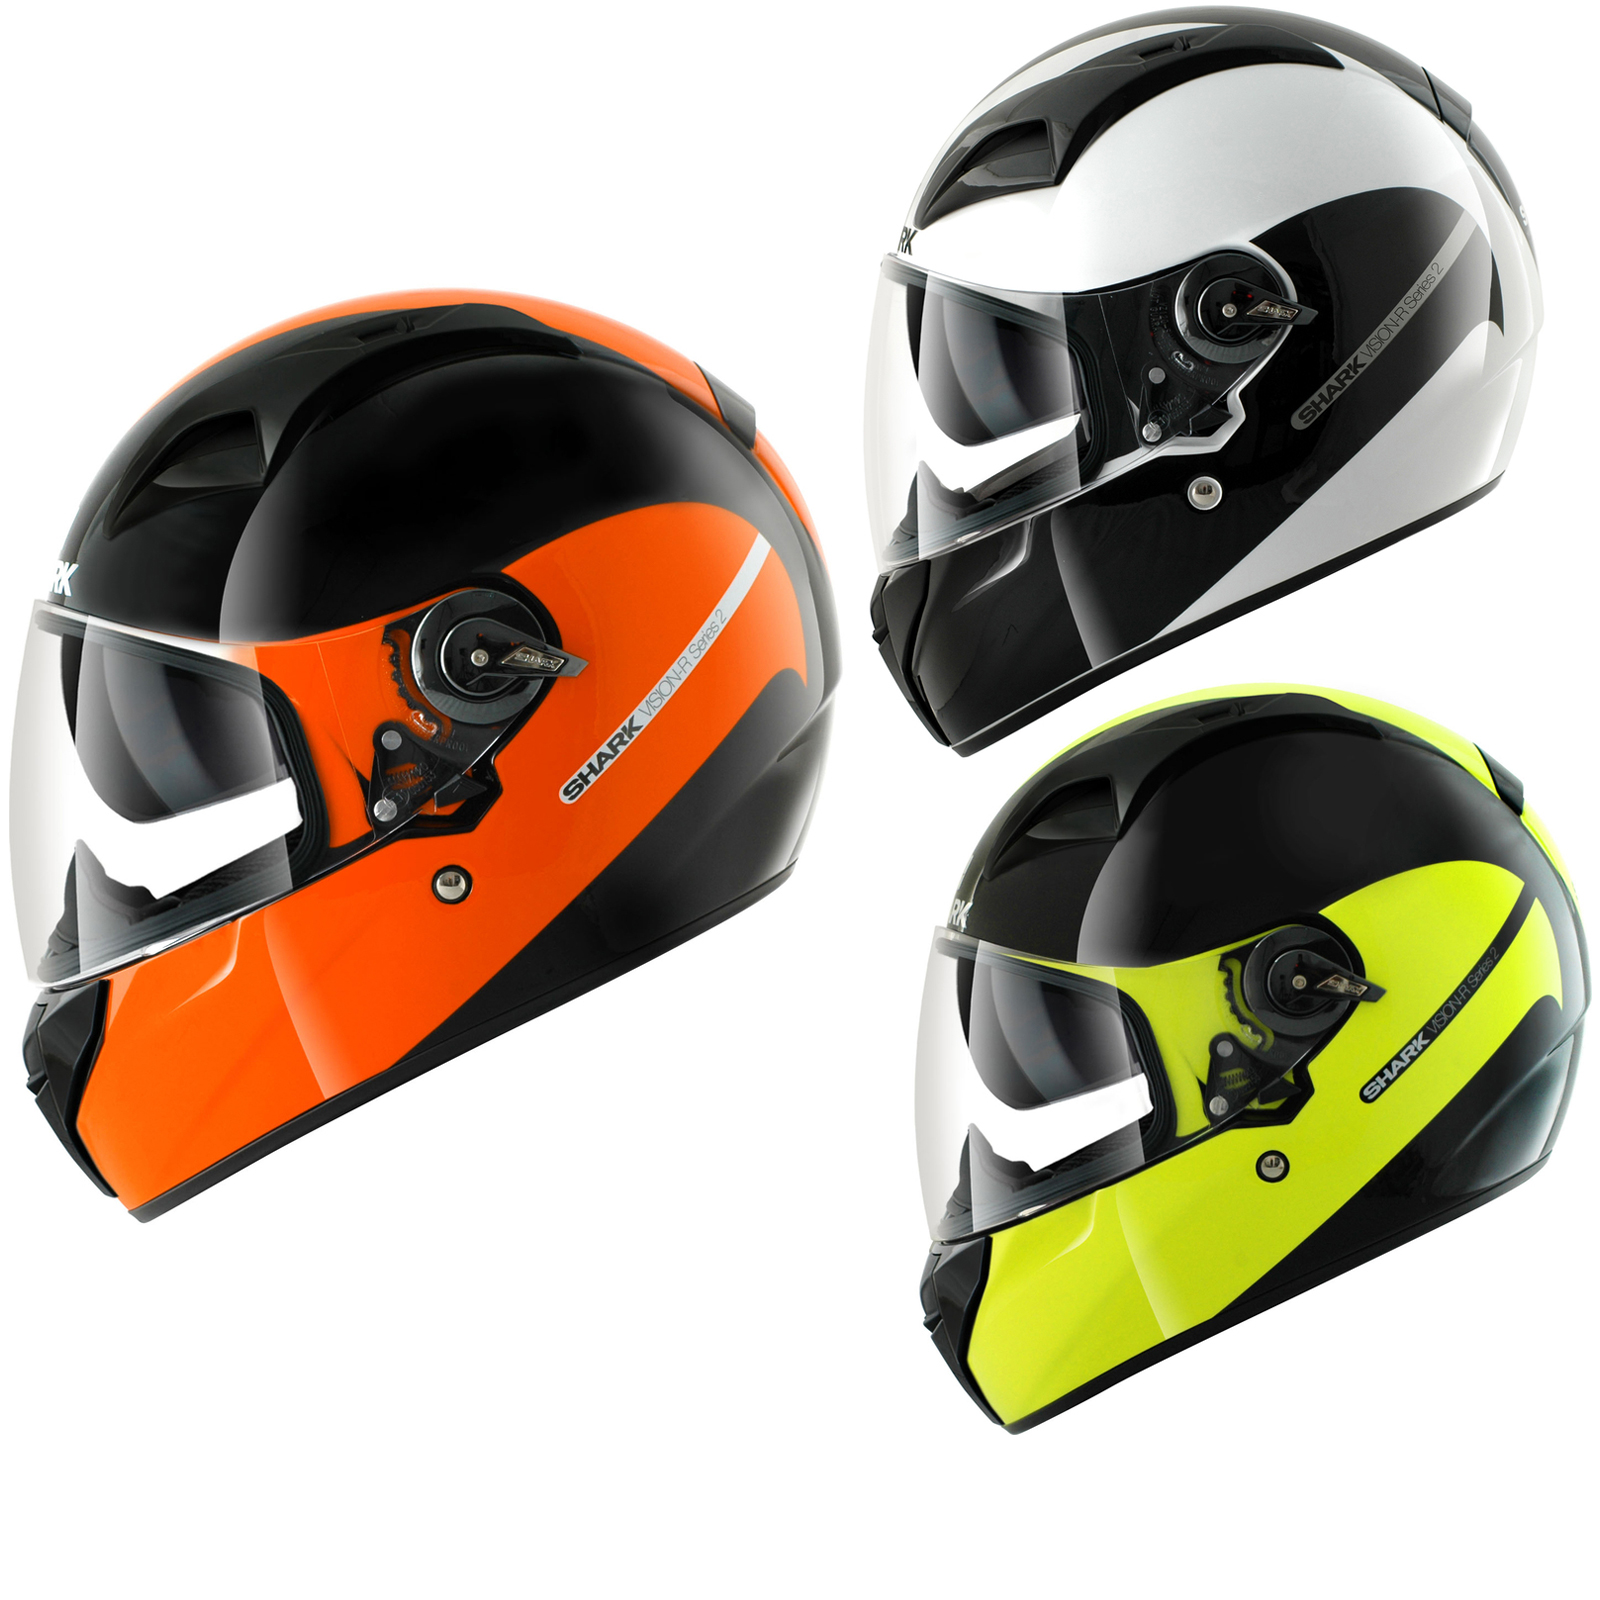 shark vision r series 2 st inko motorcycle helmet full face helmets. Black Bedroom Furniture Sets. Home Design Ideas